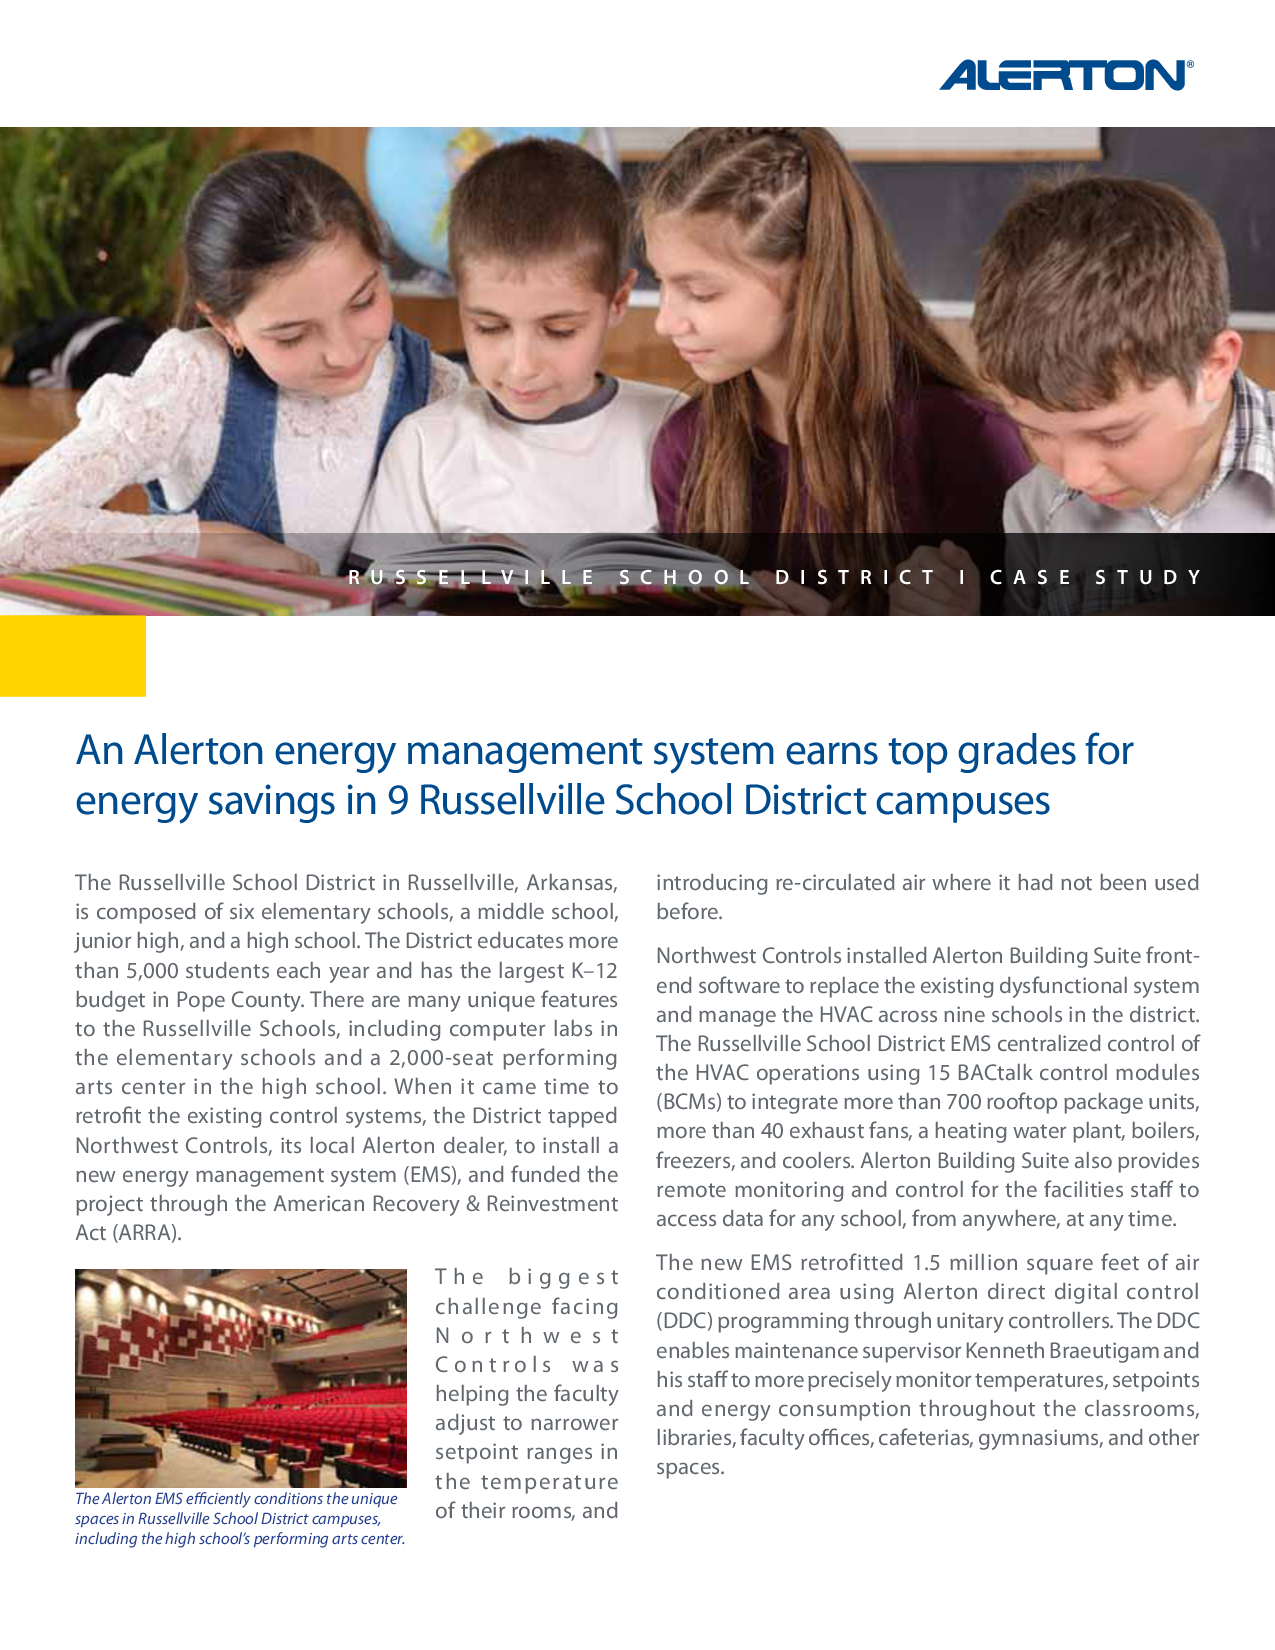 An Alerton energy management system earns top grades for energy savings in 9 Russellville School District campuses